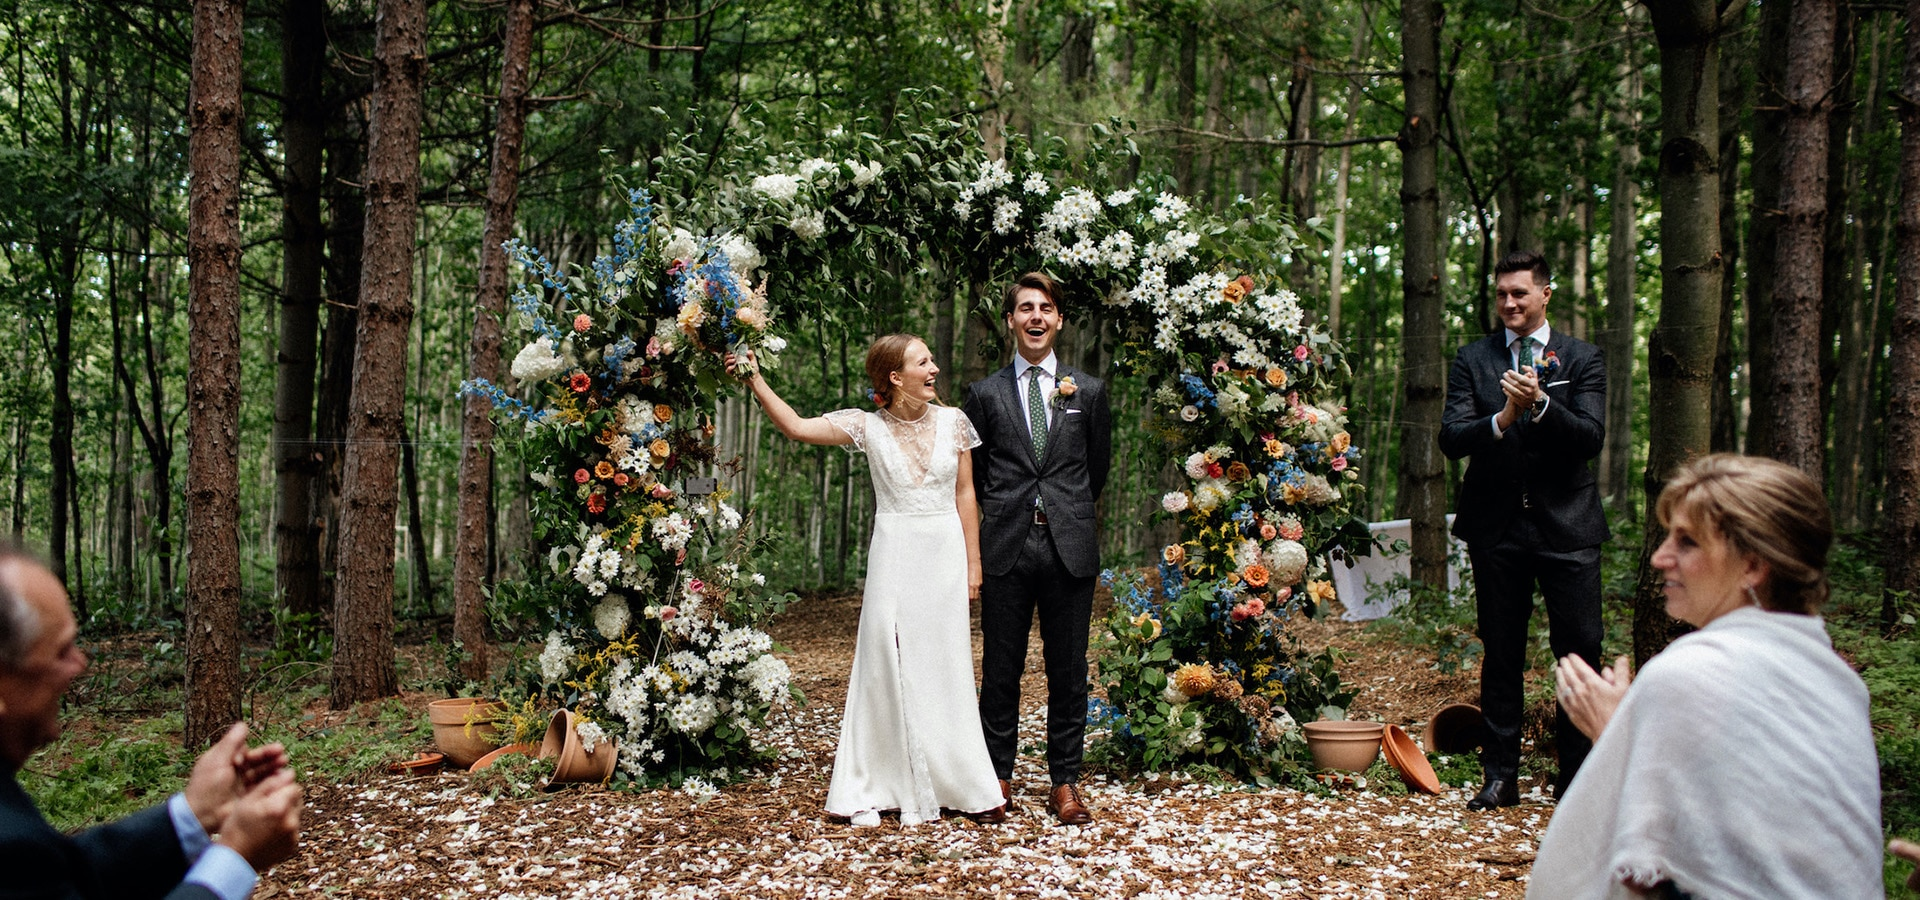 Hero image for 10 Ways to Plan a Magical Outdoor Wedding in the Forest